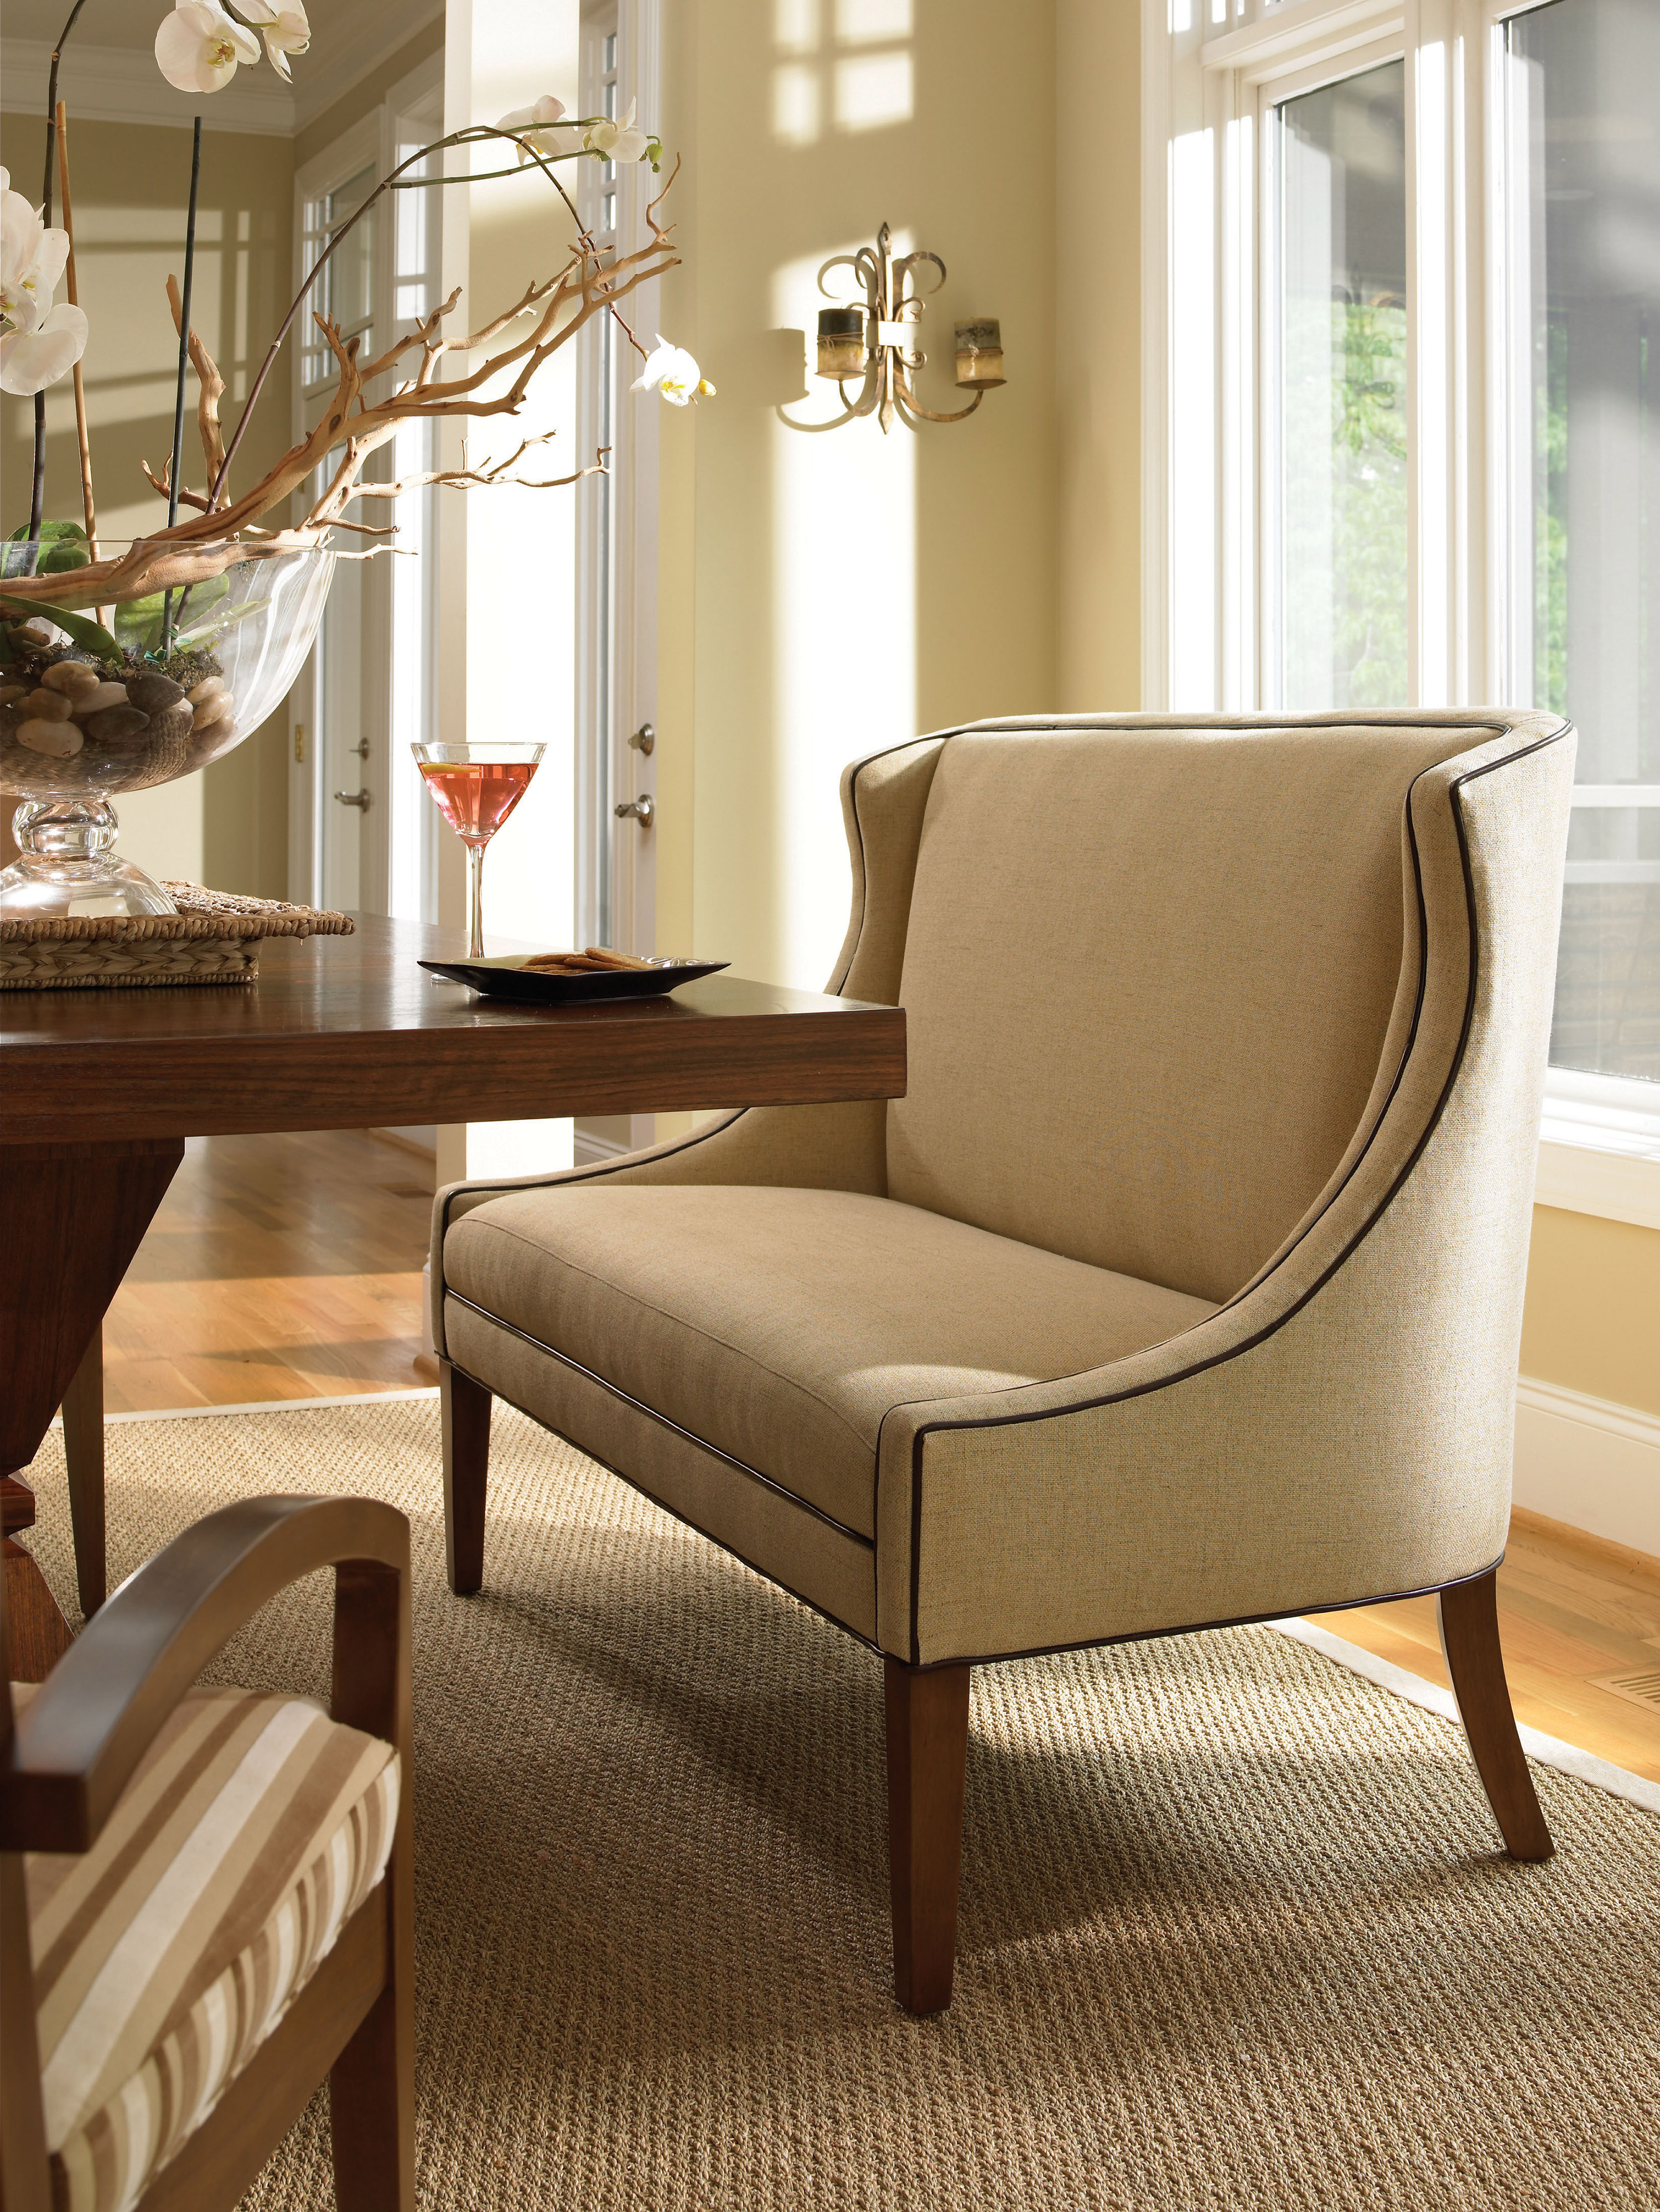 How To Get Your Dining Room Thanksgiving Ready Part 2